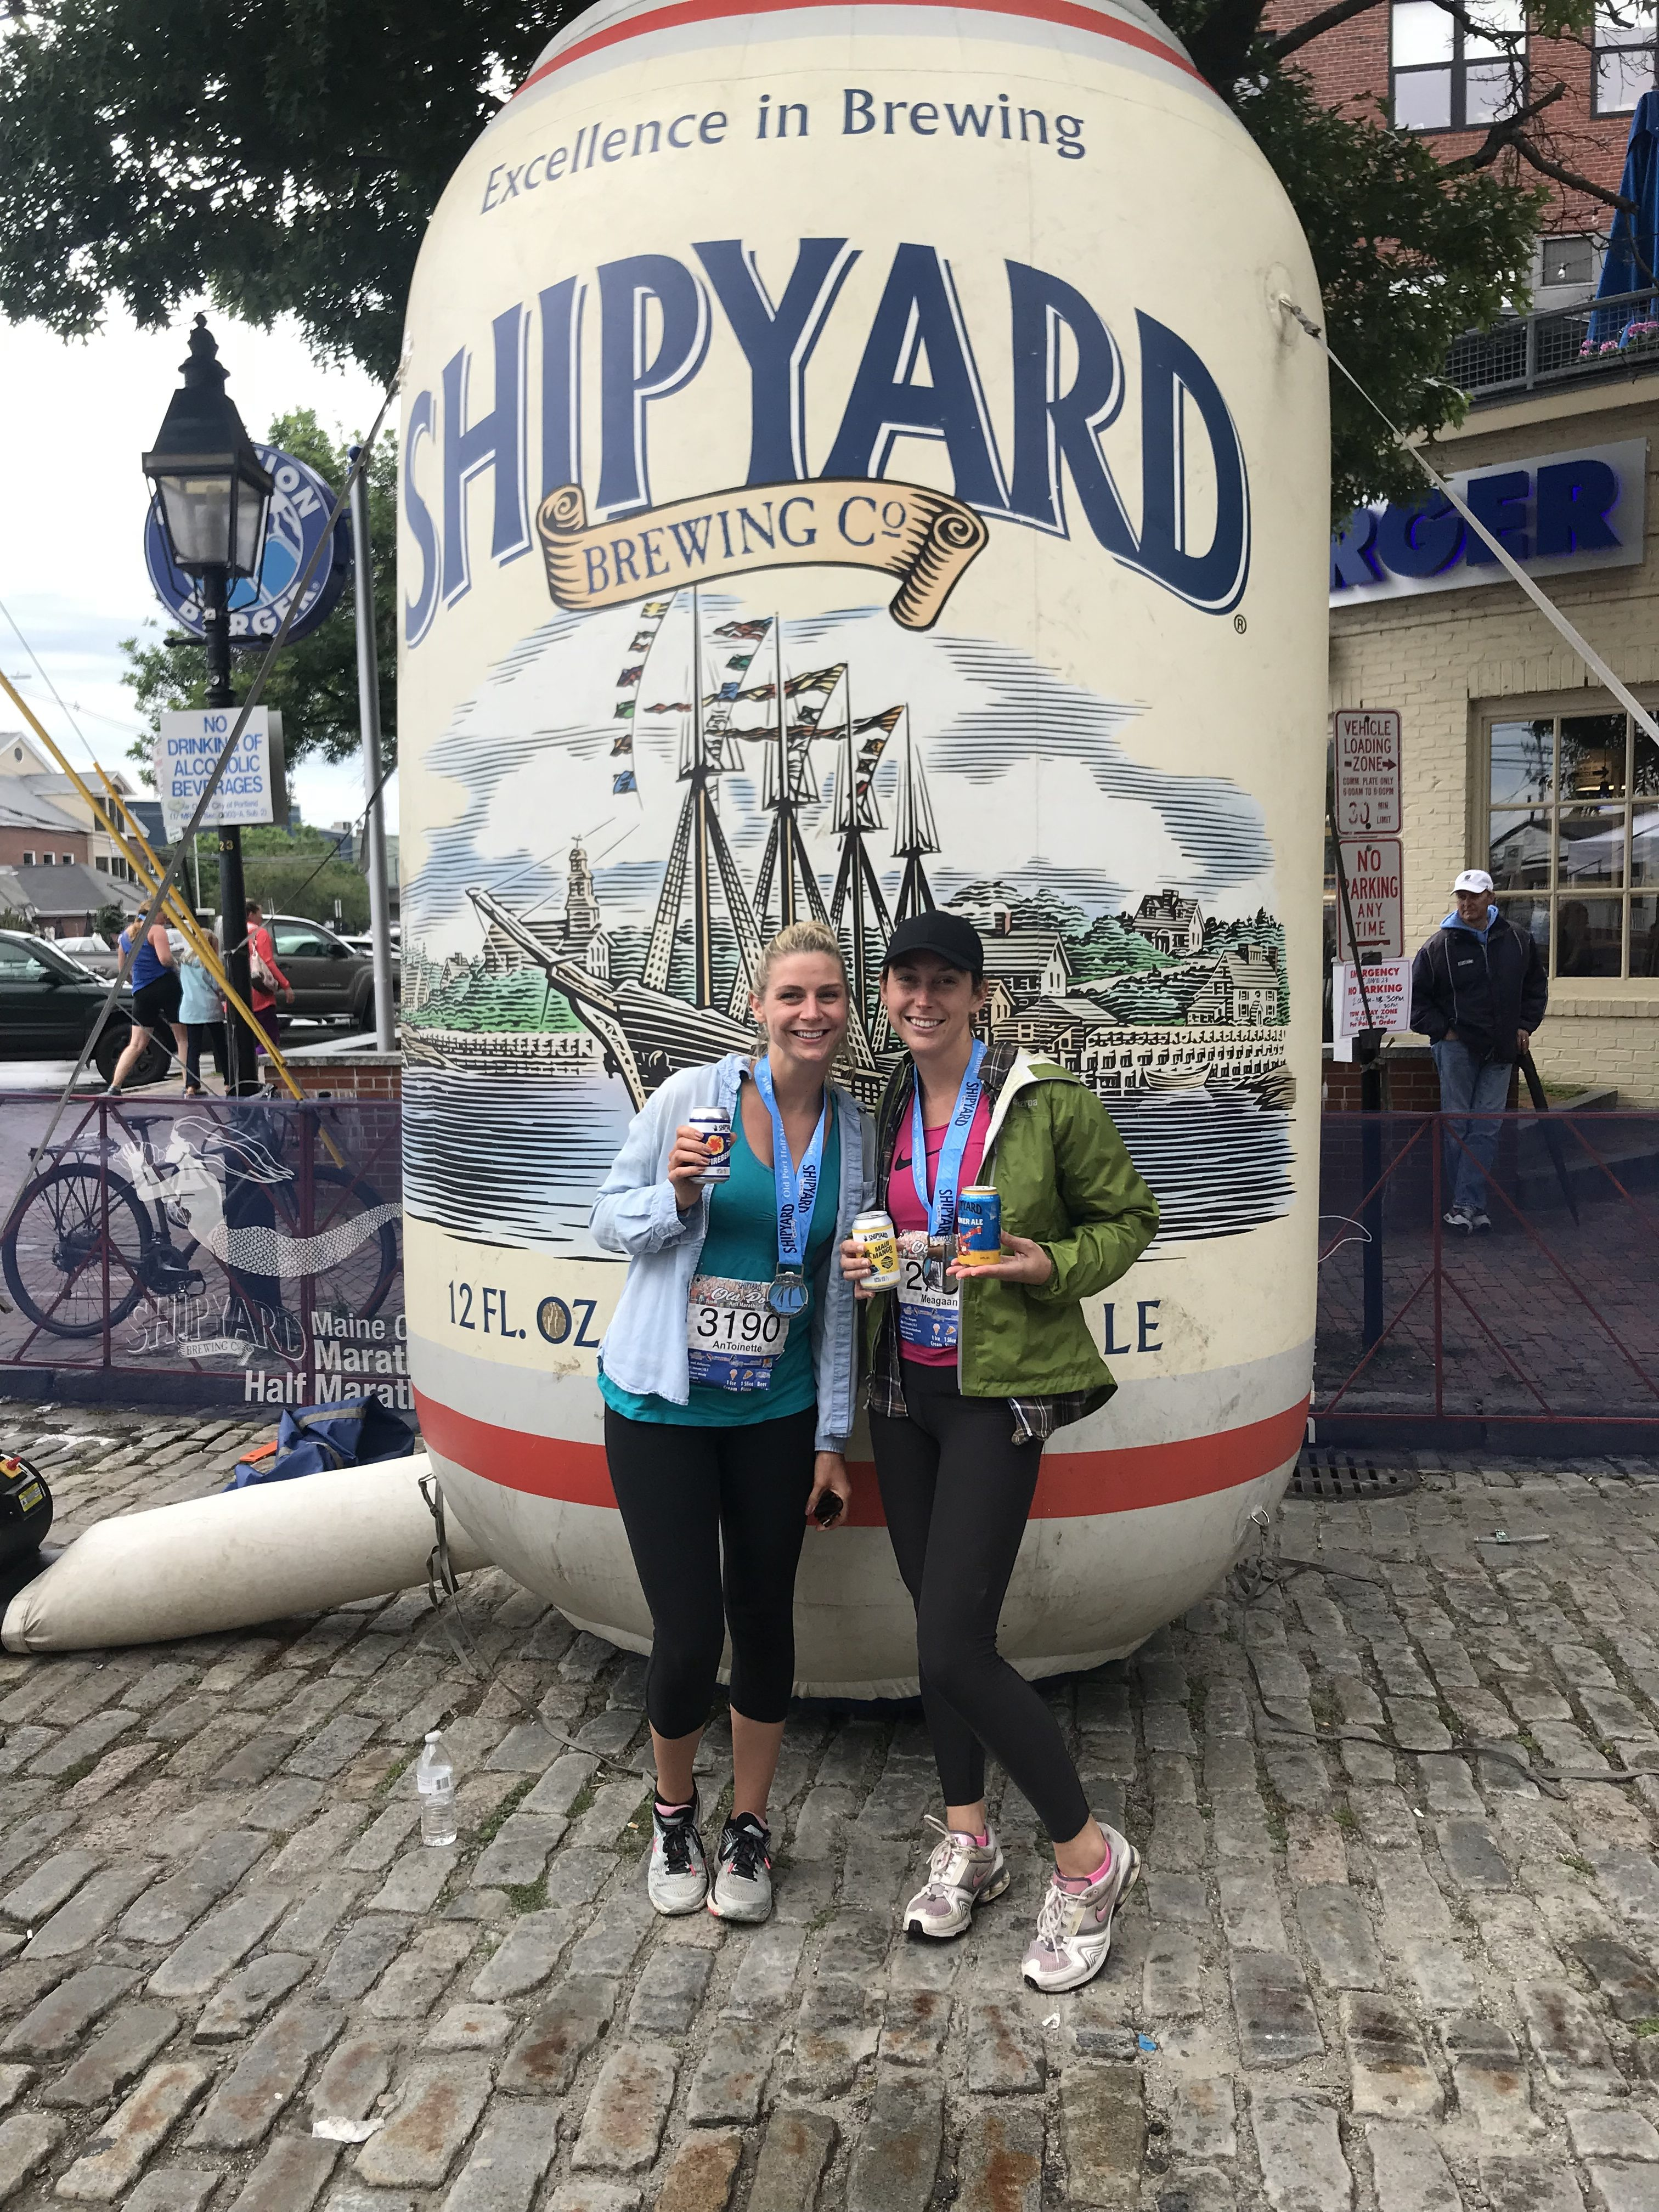 Post road race, Portland, ME